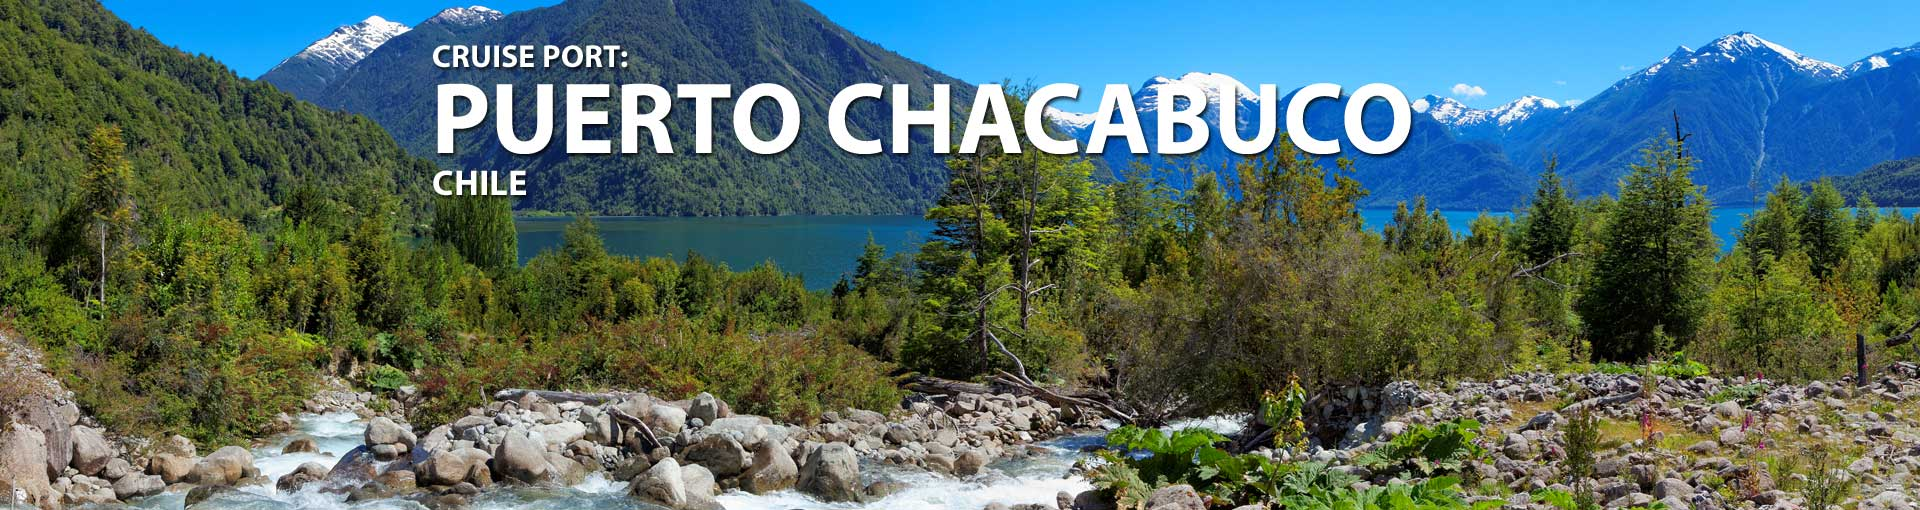 Cruises to Puerto Chacabuco, Chile